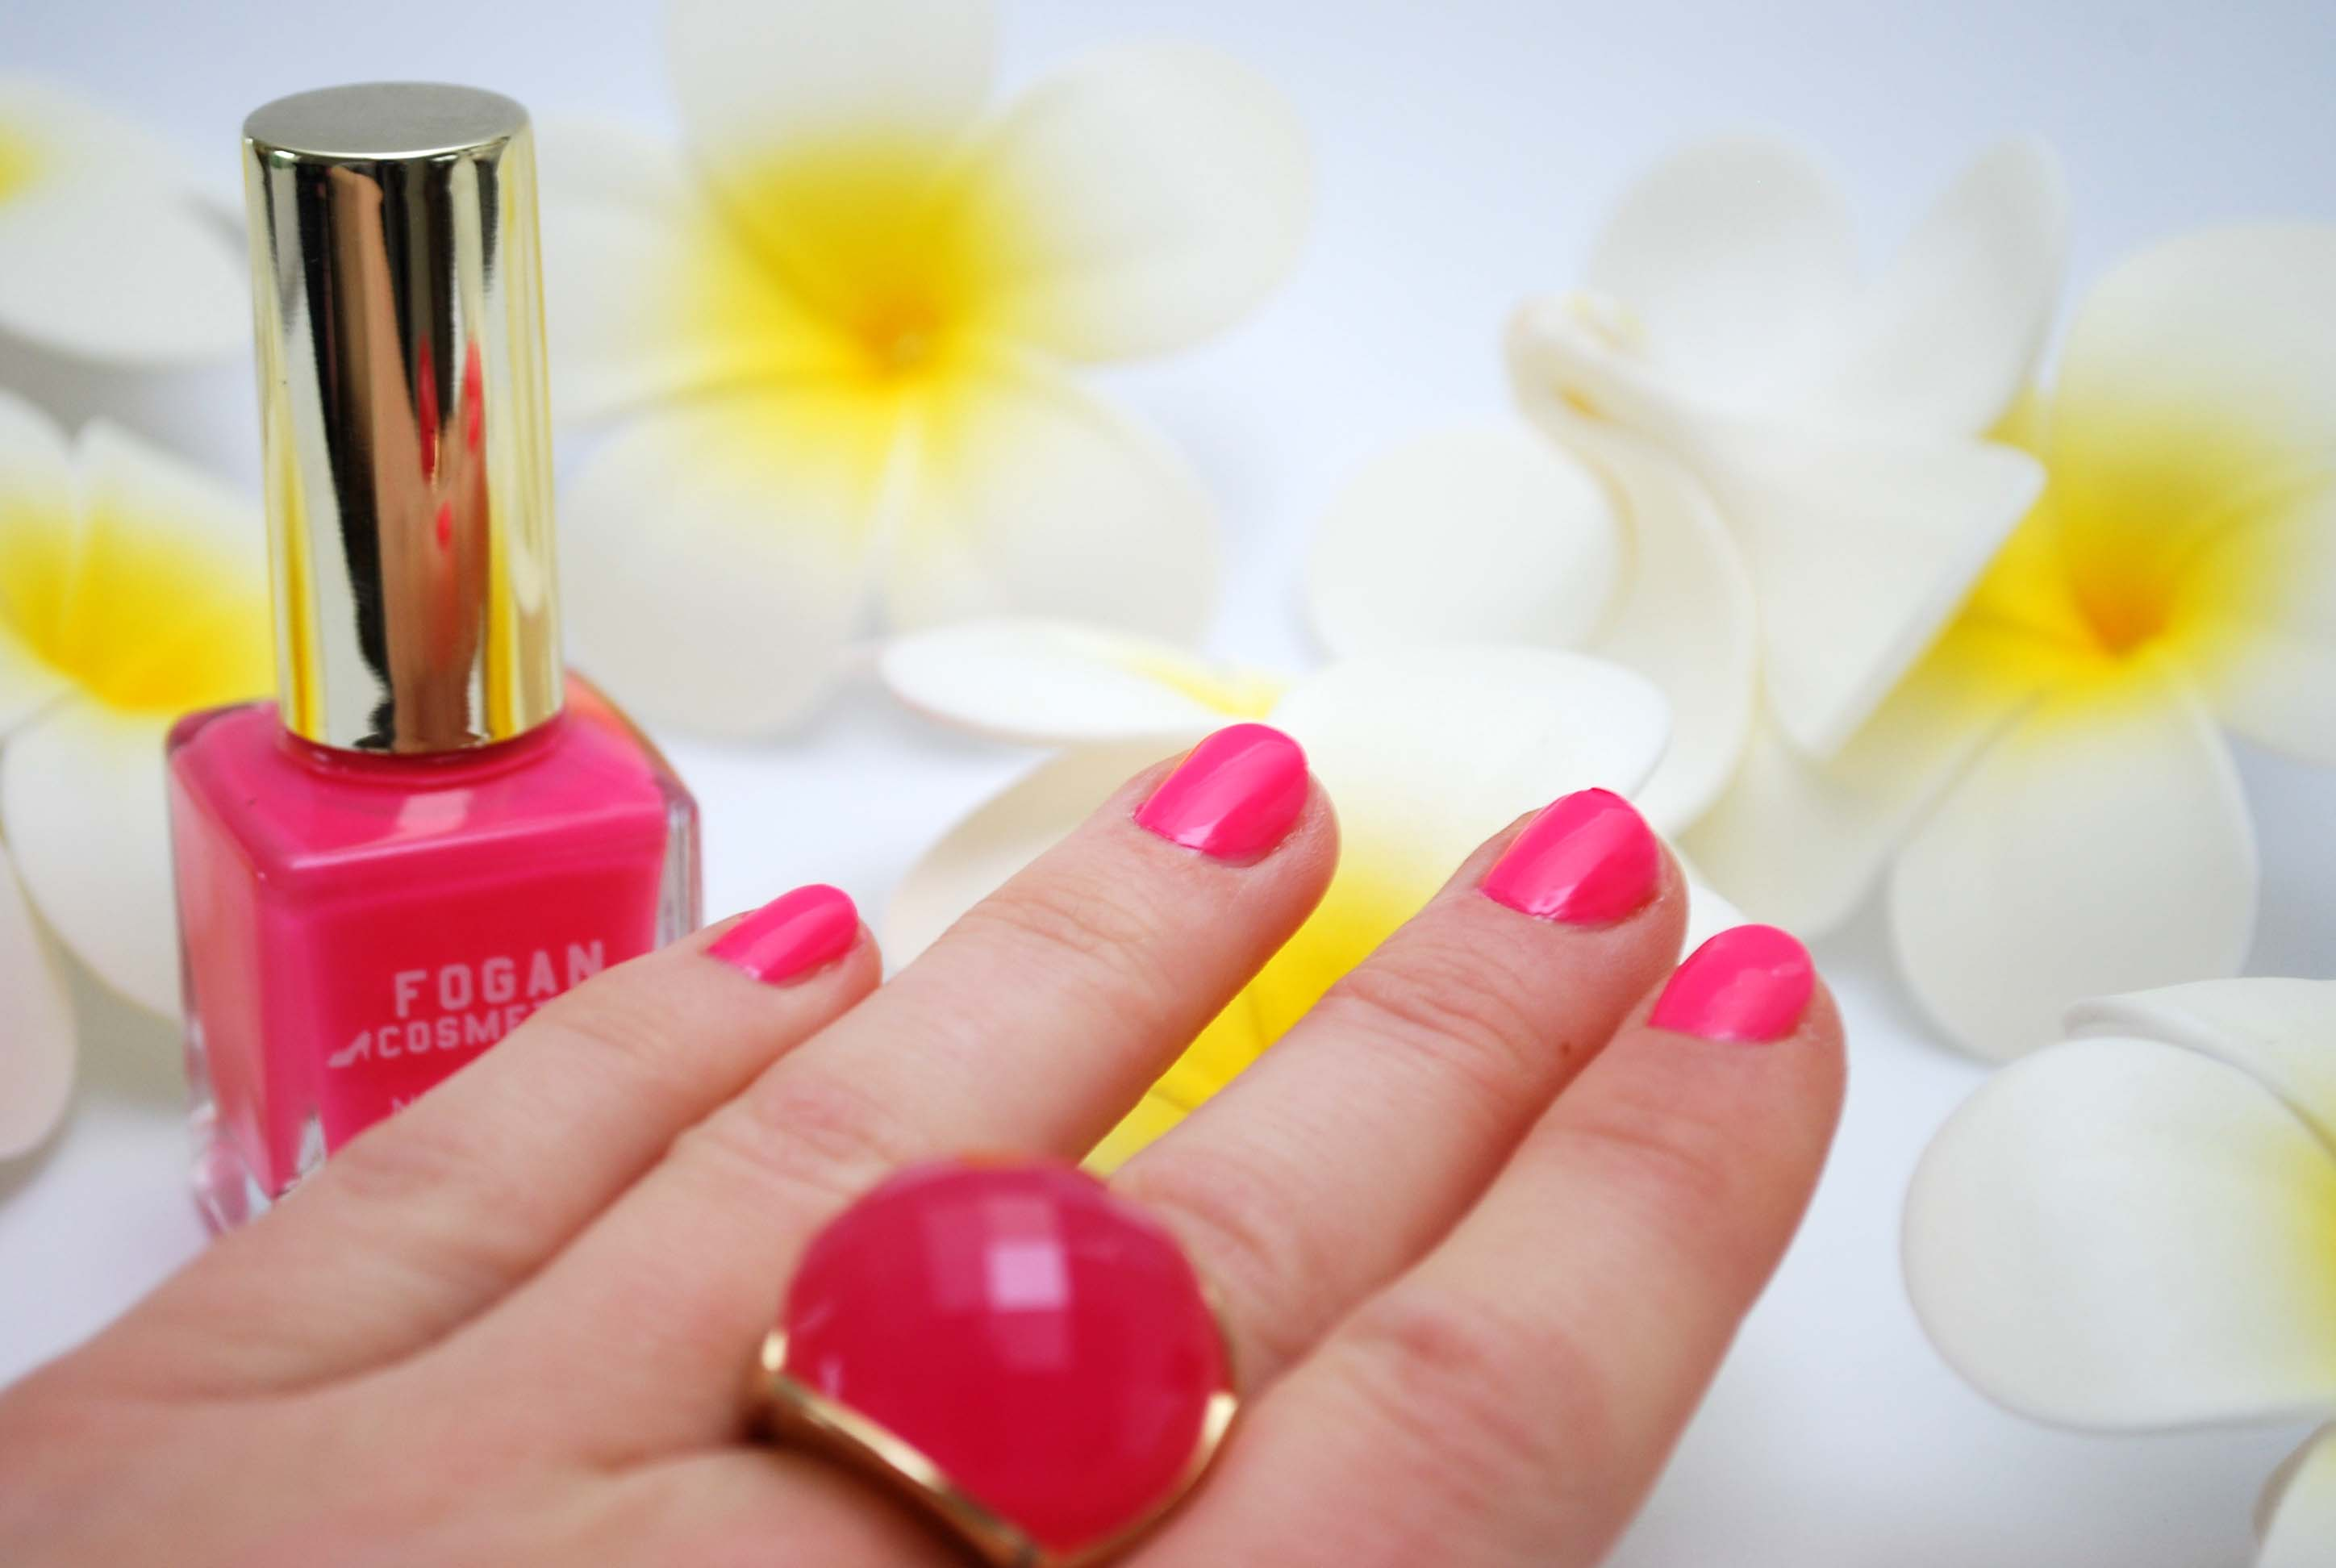 review Fogan nagellak neon roze